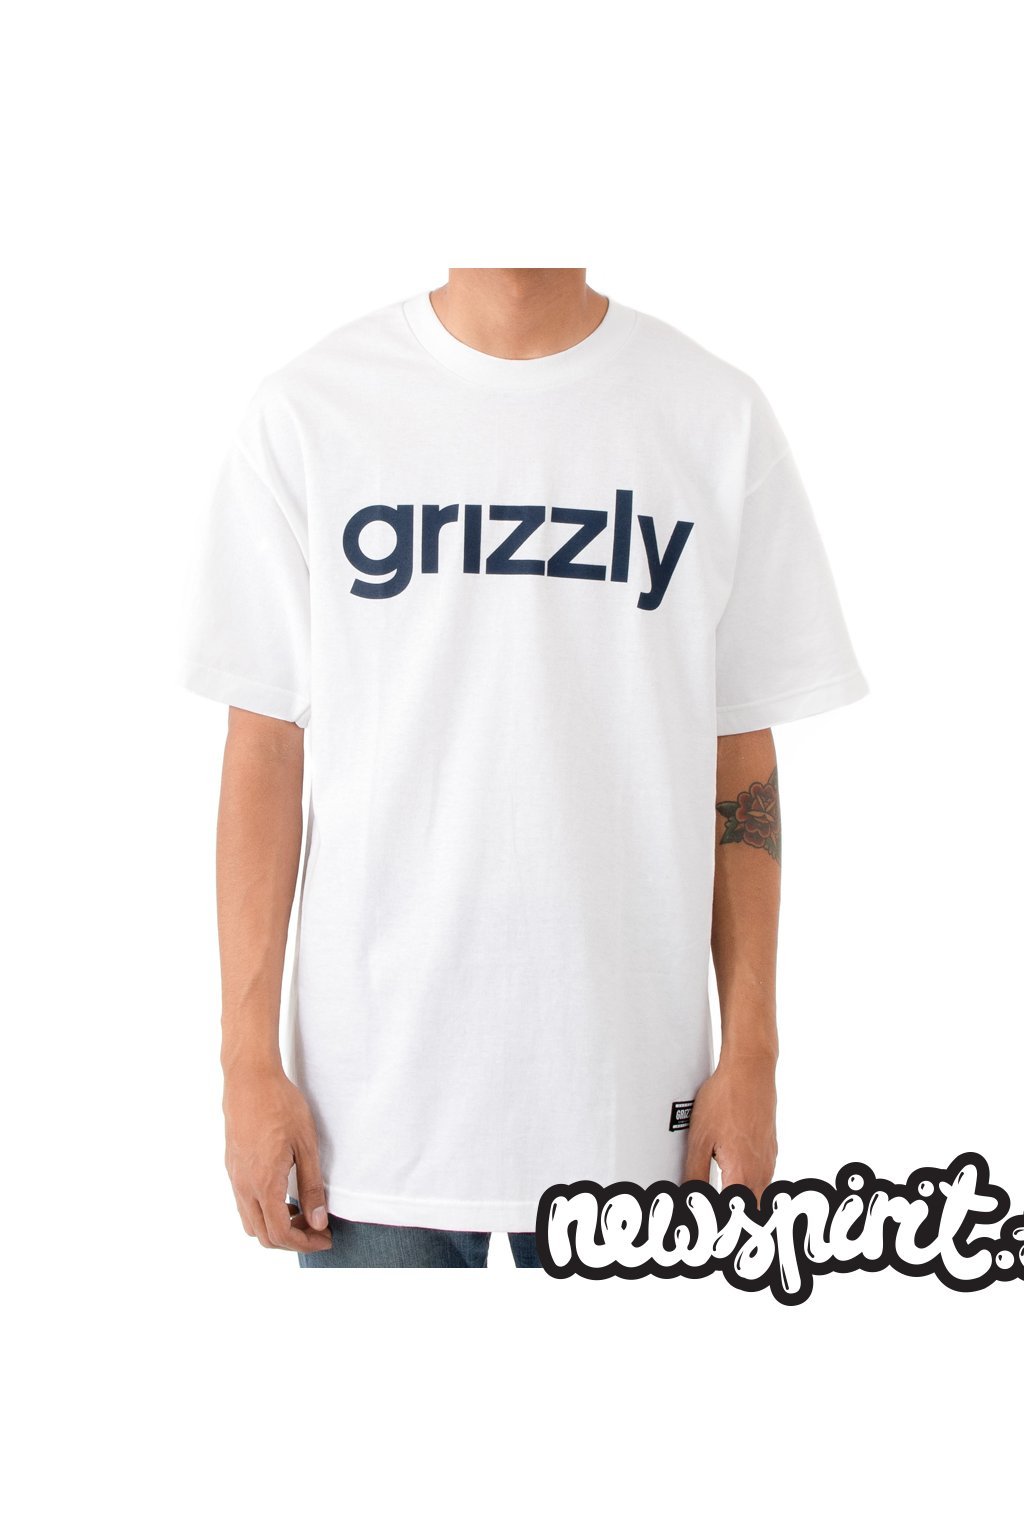 Tričko Grizzly Lowercase White/Navy